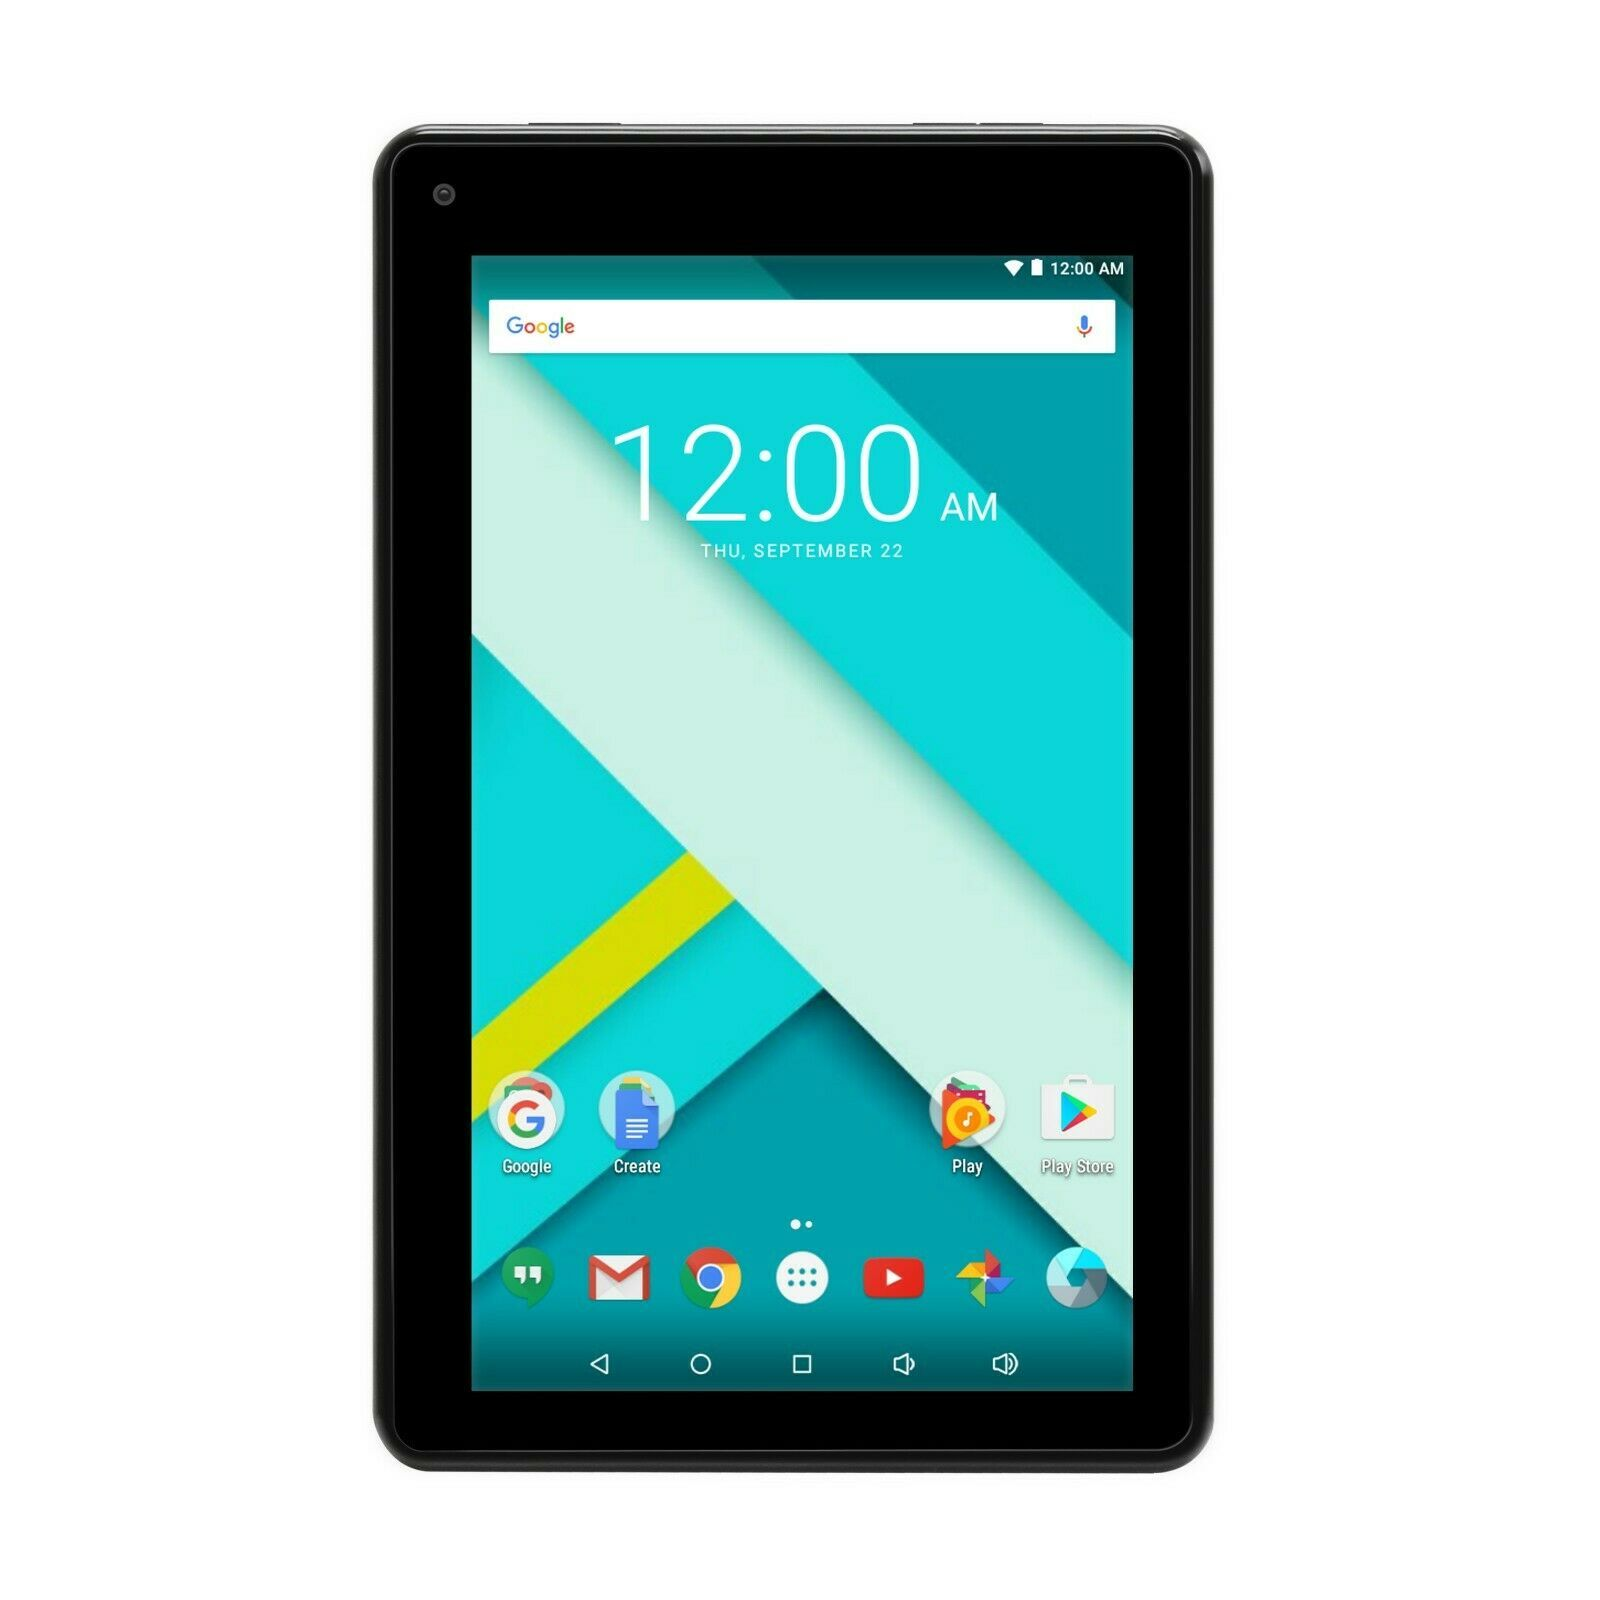 Rca Voyager Rct6973w43 Voyager Iii Rca 7 16gb Tablet Android